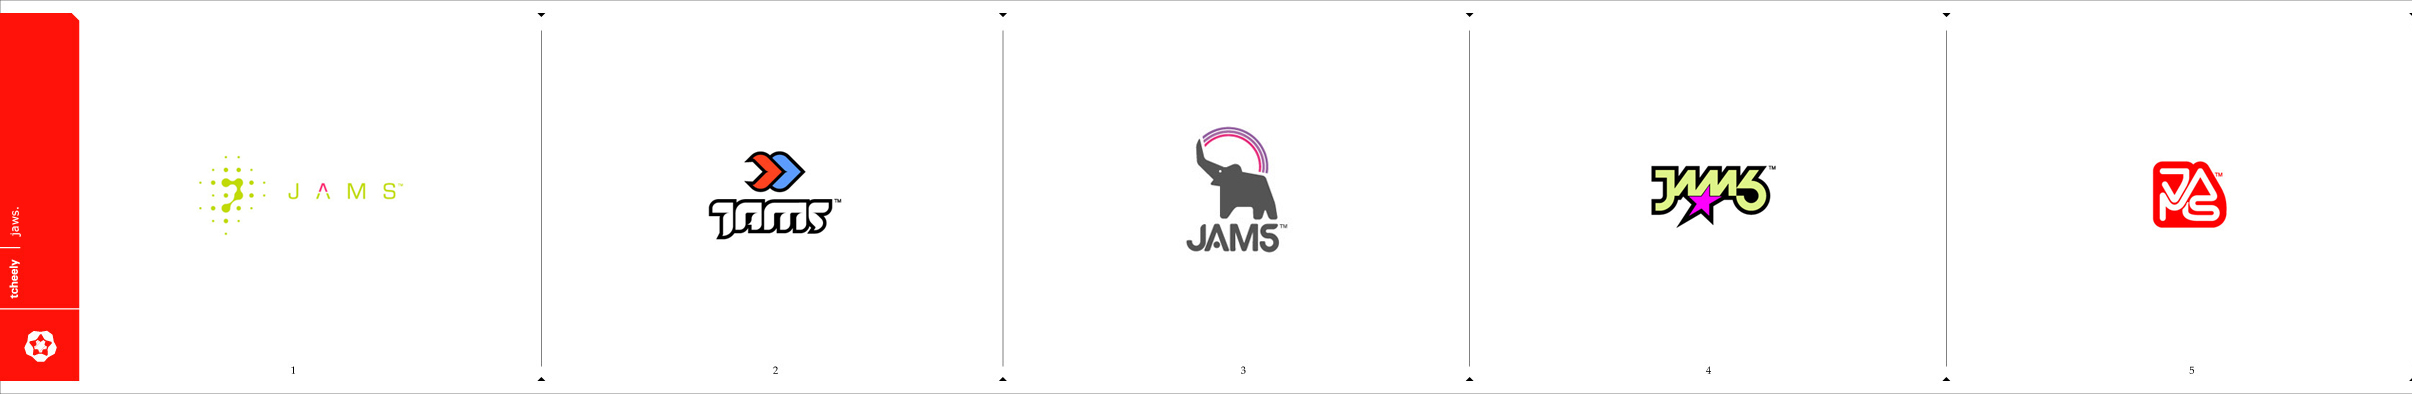 JAMS logo by Tcheely